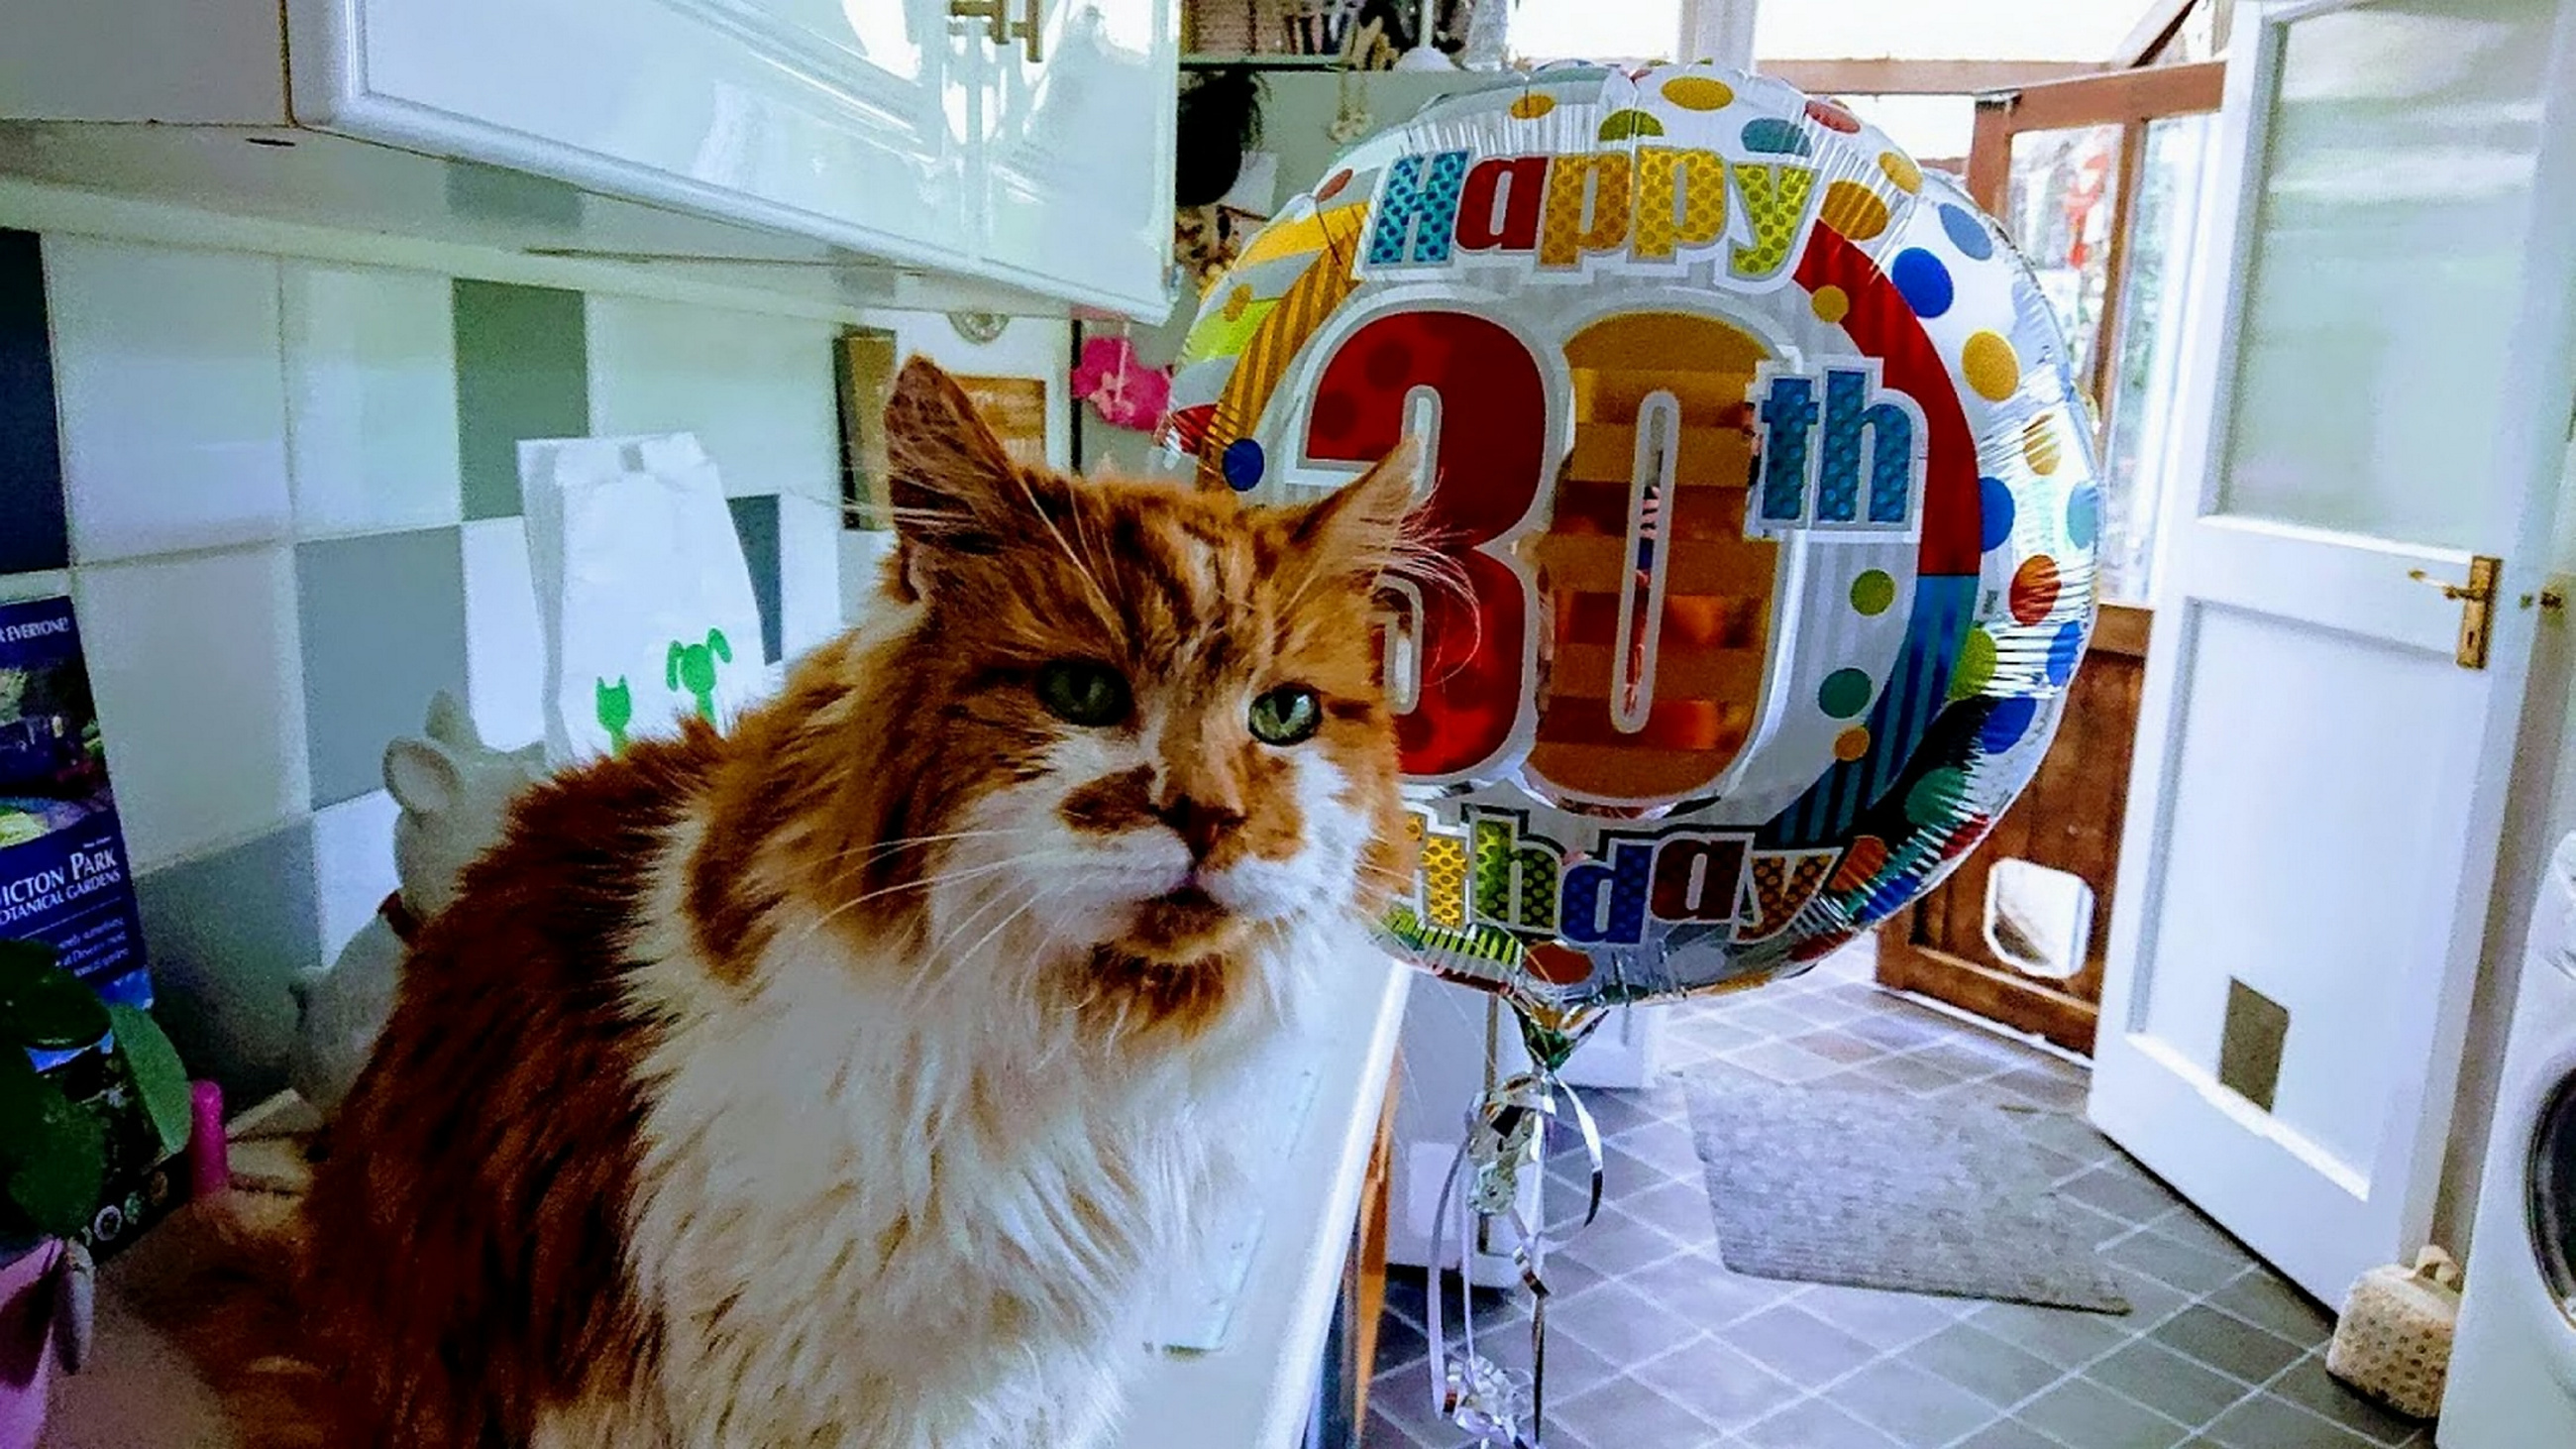 British Cat Could Be 'Oldest In The World' After Celebrating 30th Birthday